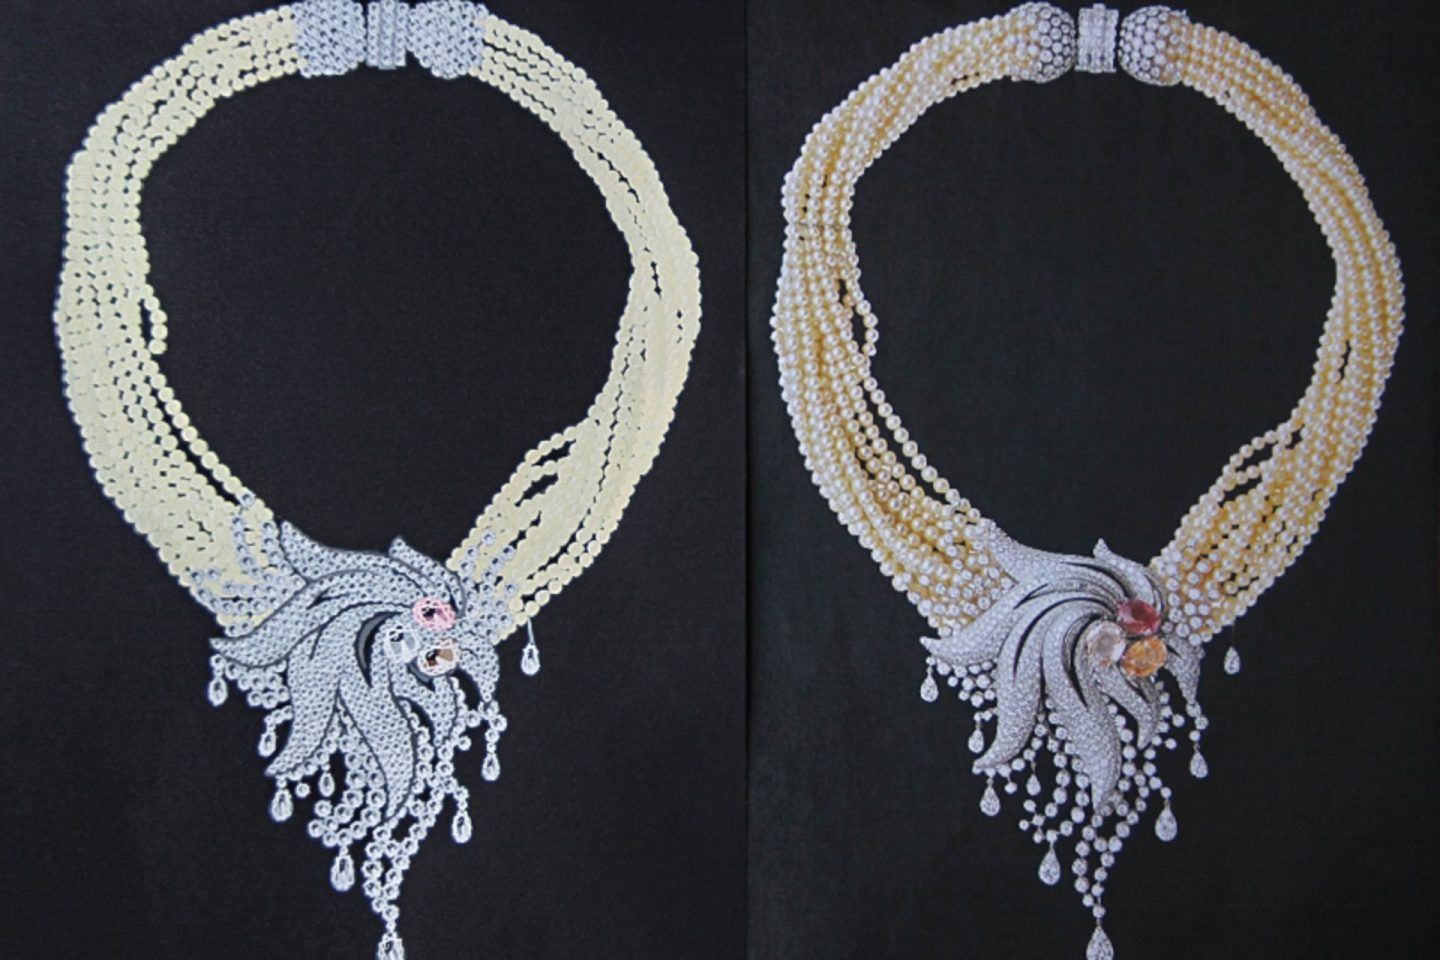 Shine & draw Jewelry drawing reproduction pearl diamonds sapphire star necklace